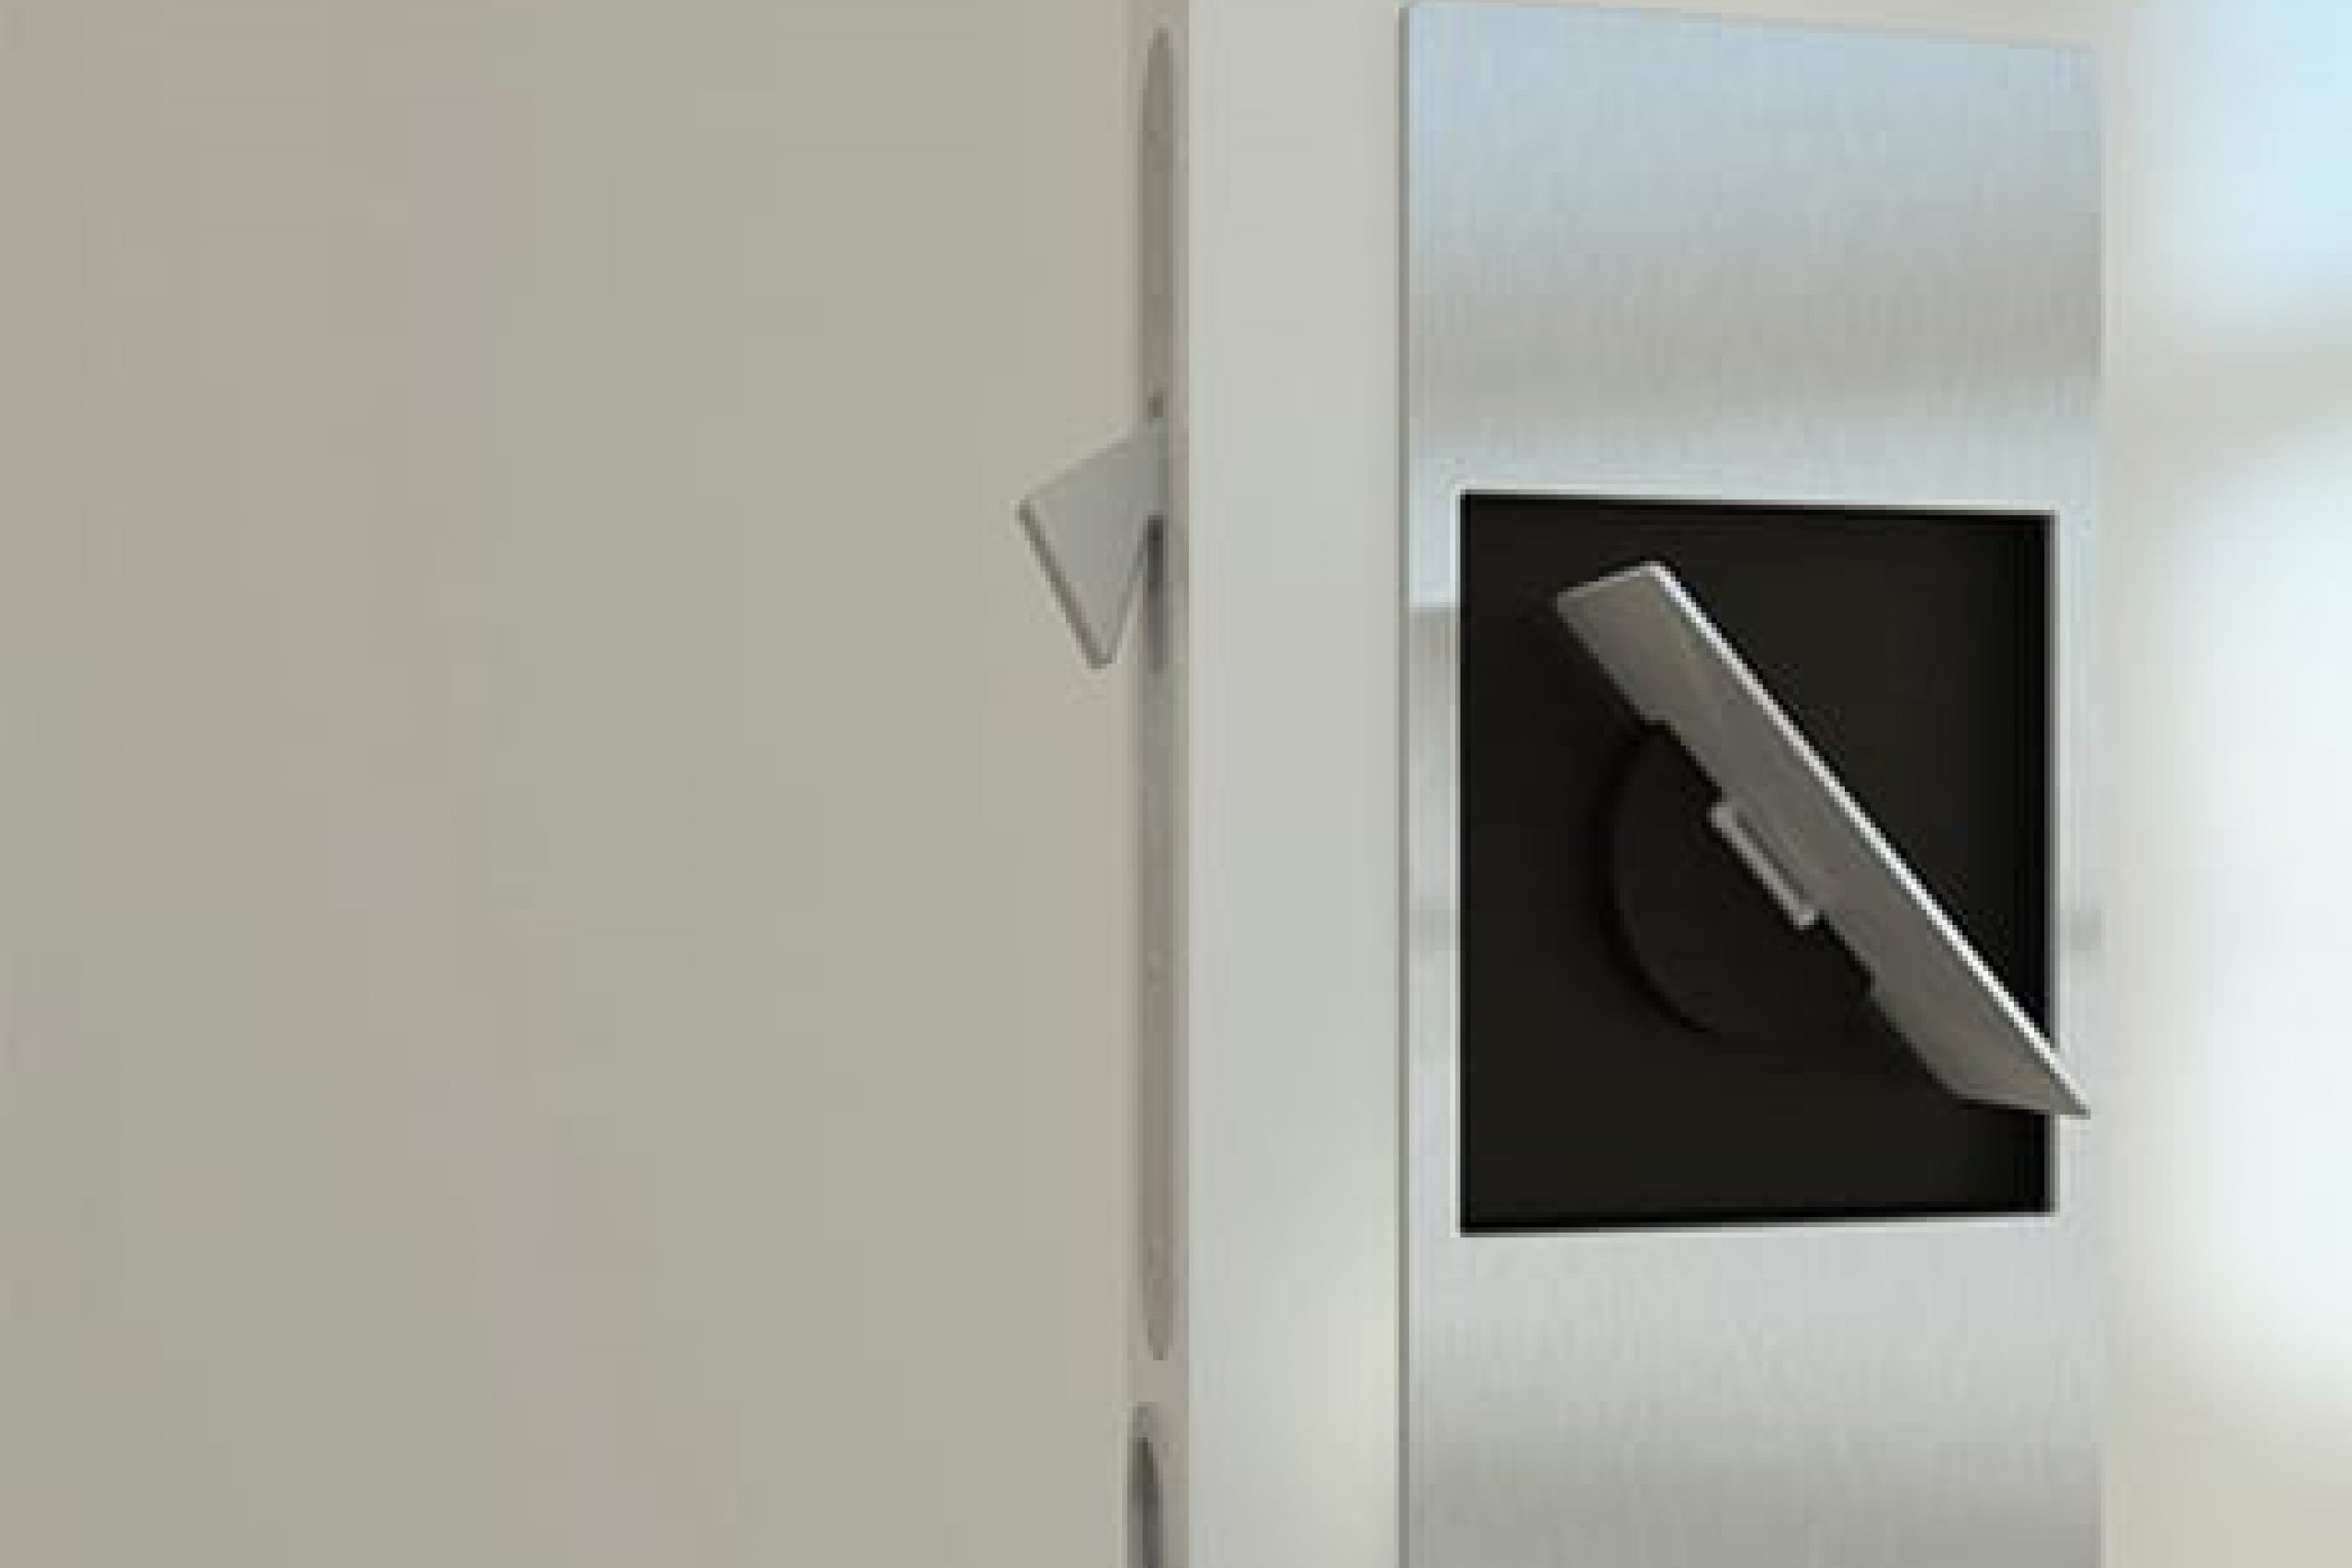 Privacy Sliding Latch by Bellevue Architectural